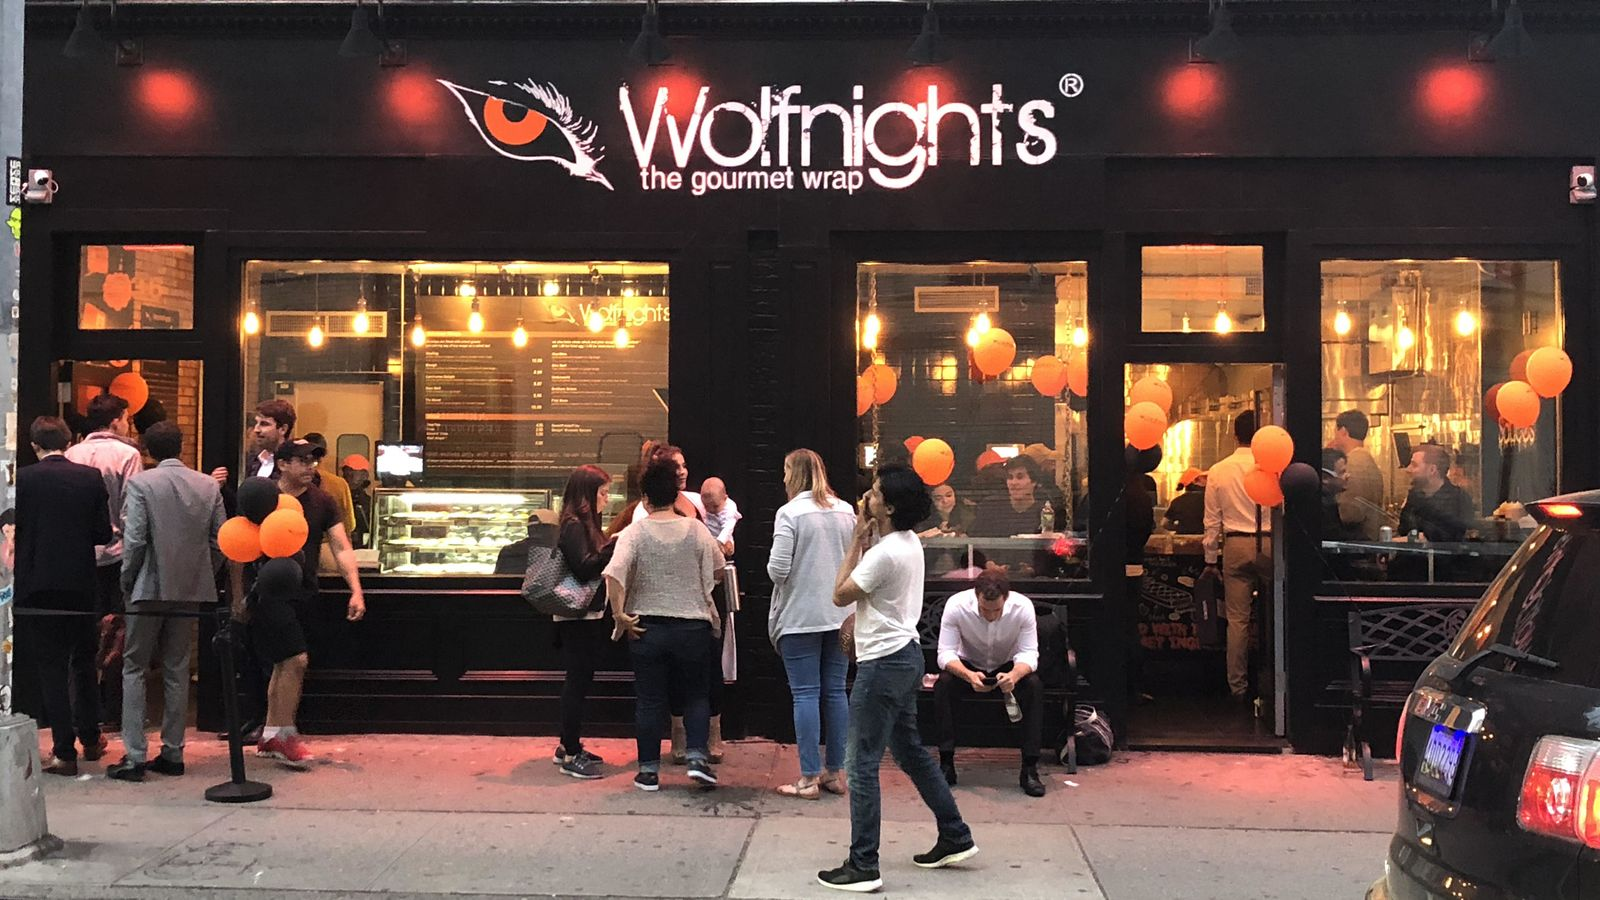 Wolfnights Expansion Will More Than Double its Footprint in New York City